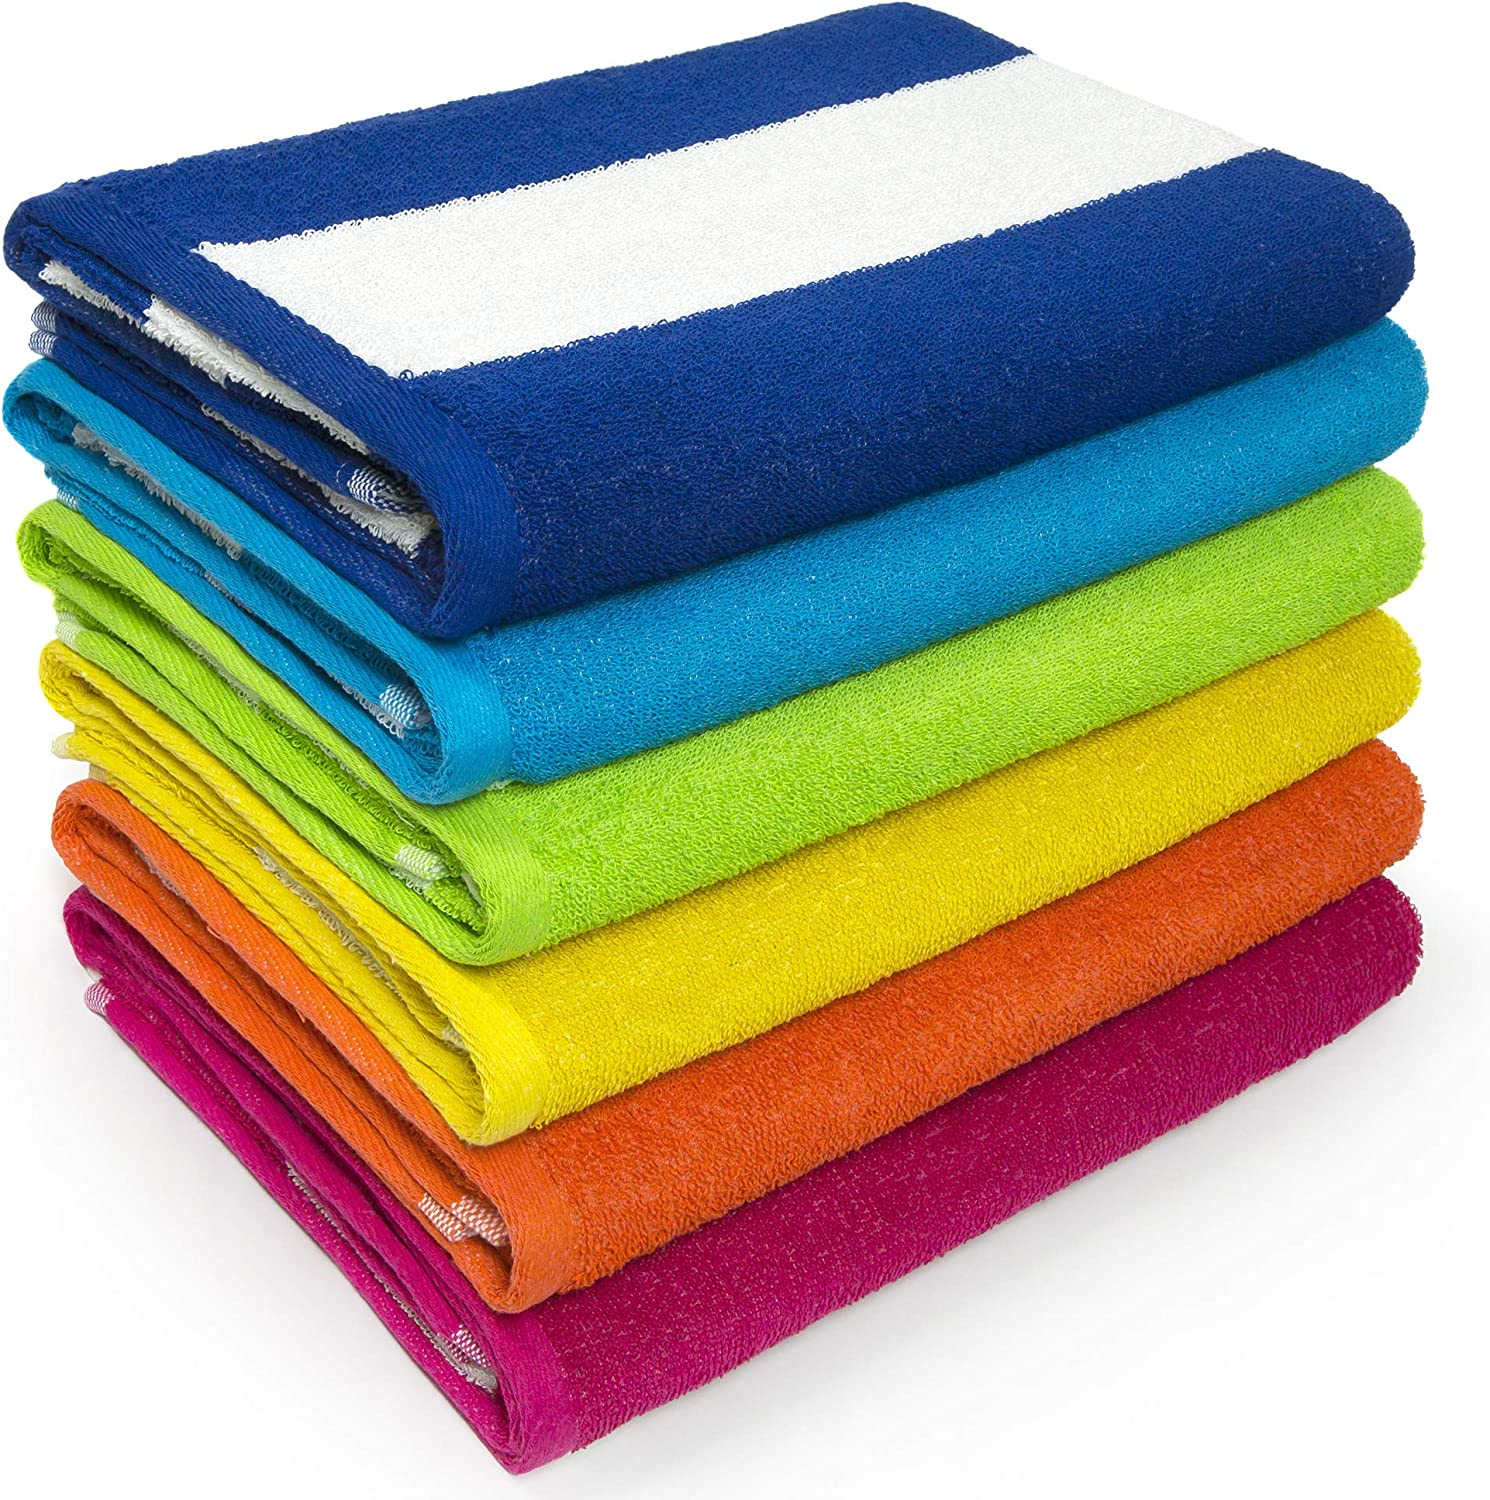 Beach and Pool Towel Soft and Absorbent Terry Loop